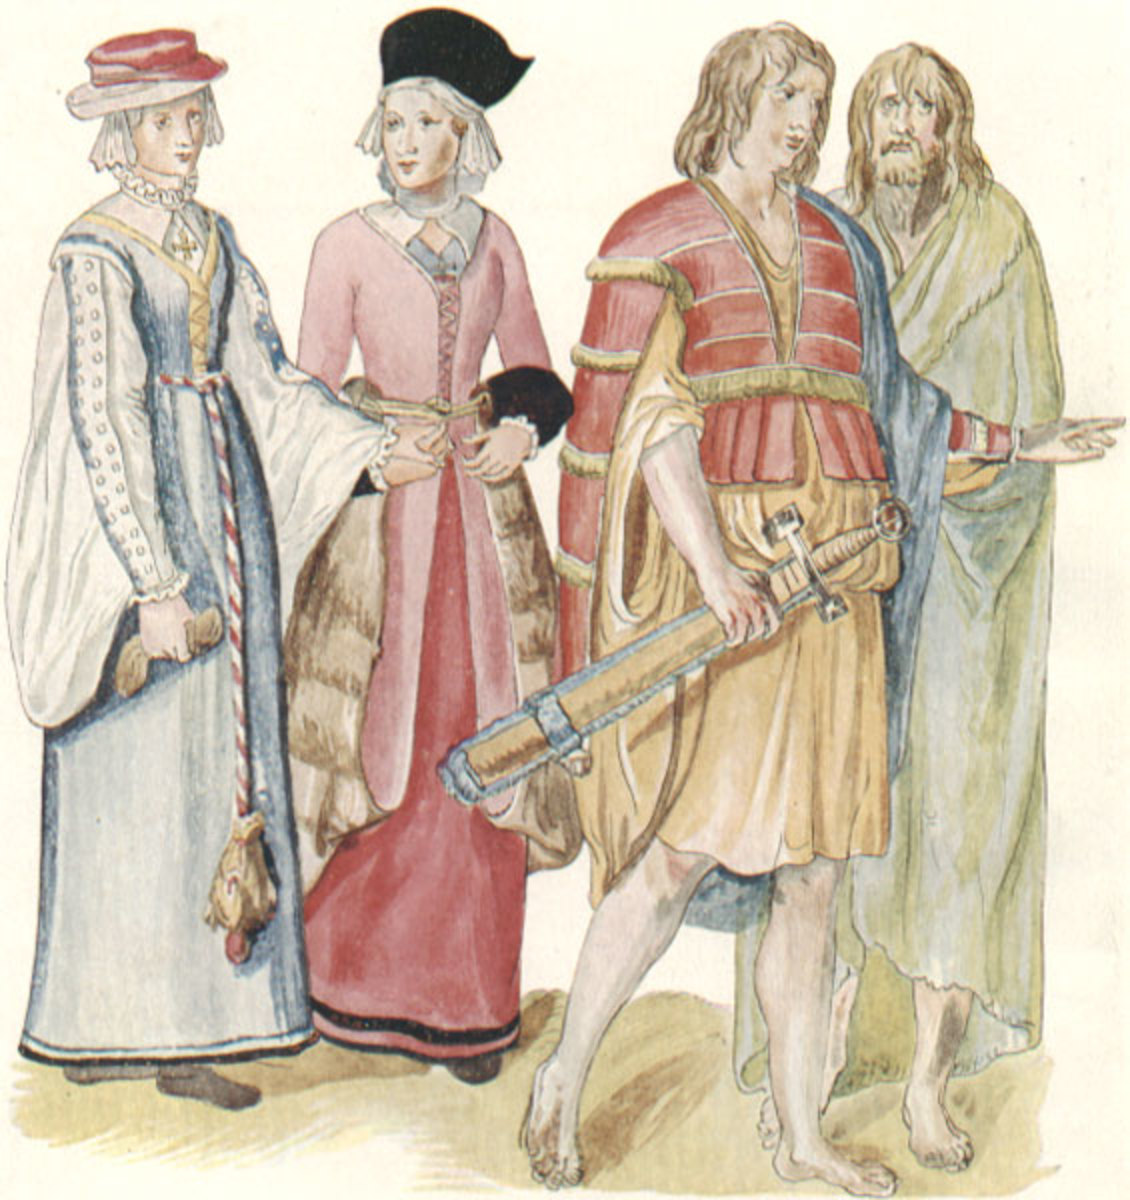 A painting of Irish men and women by Lucas de Heere c. 1575.